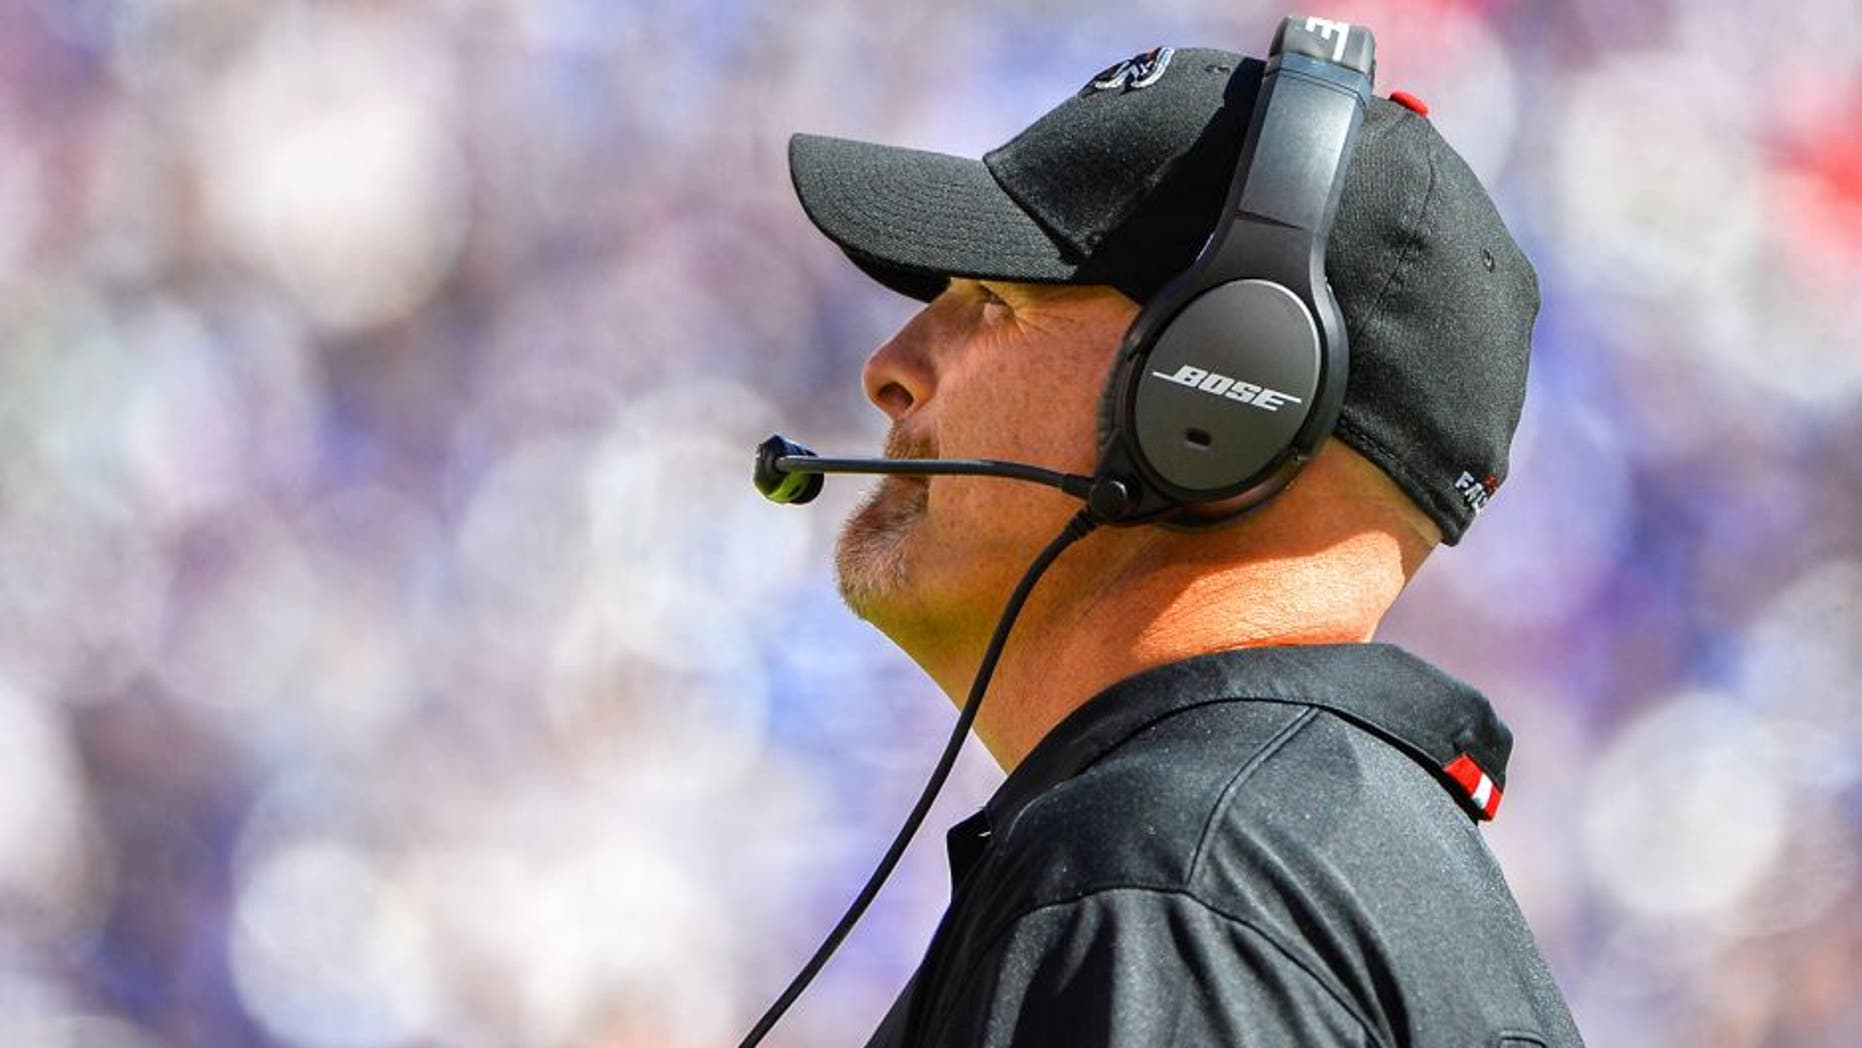 EAST RUTHERFORD, NJ - SEPTEMBER 20: Head coach Dan Quinn of the Atlanta Falcons looks on during a game against the New York Giants at MetLife Stadium on September 20, 2015 in East Rutherford, New Jersey. (Photo by Alex Goodlett/Getty Images)